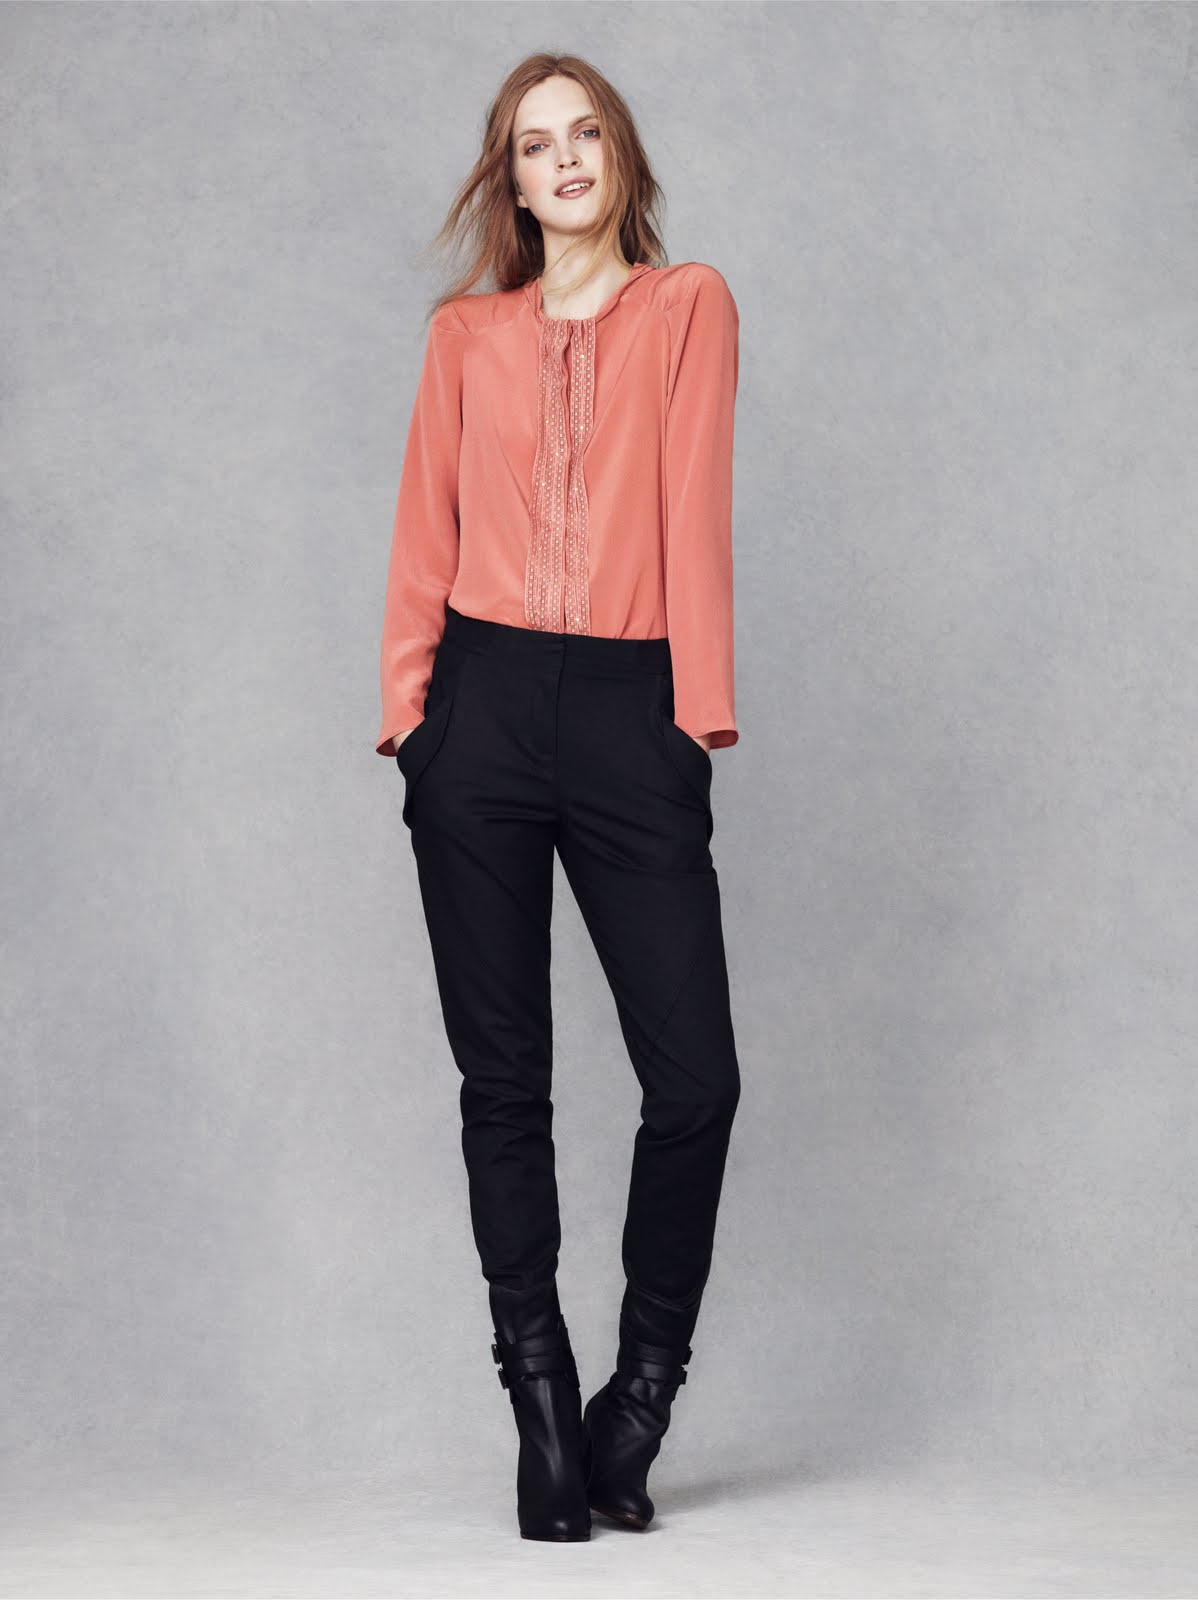 Tags french fashion la redoute secrets to french style style - Liking The Vanessa Bruno Collection For La Redoute That S All